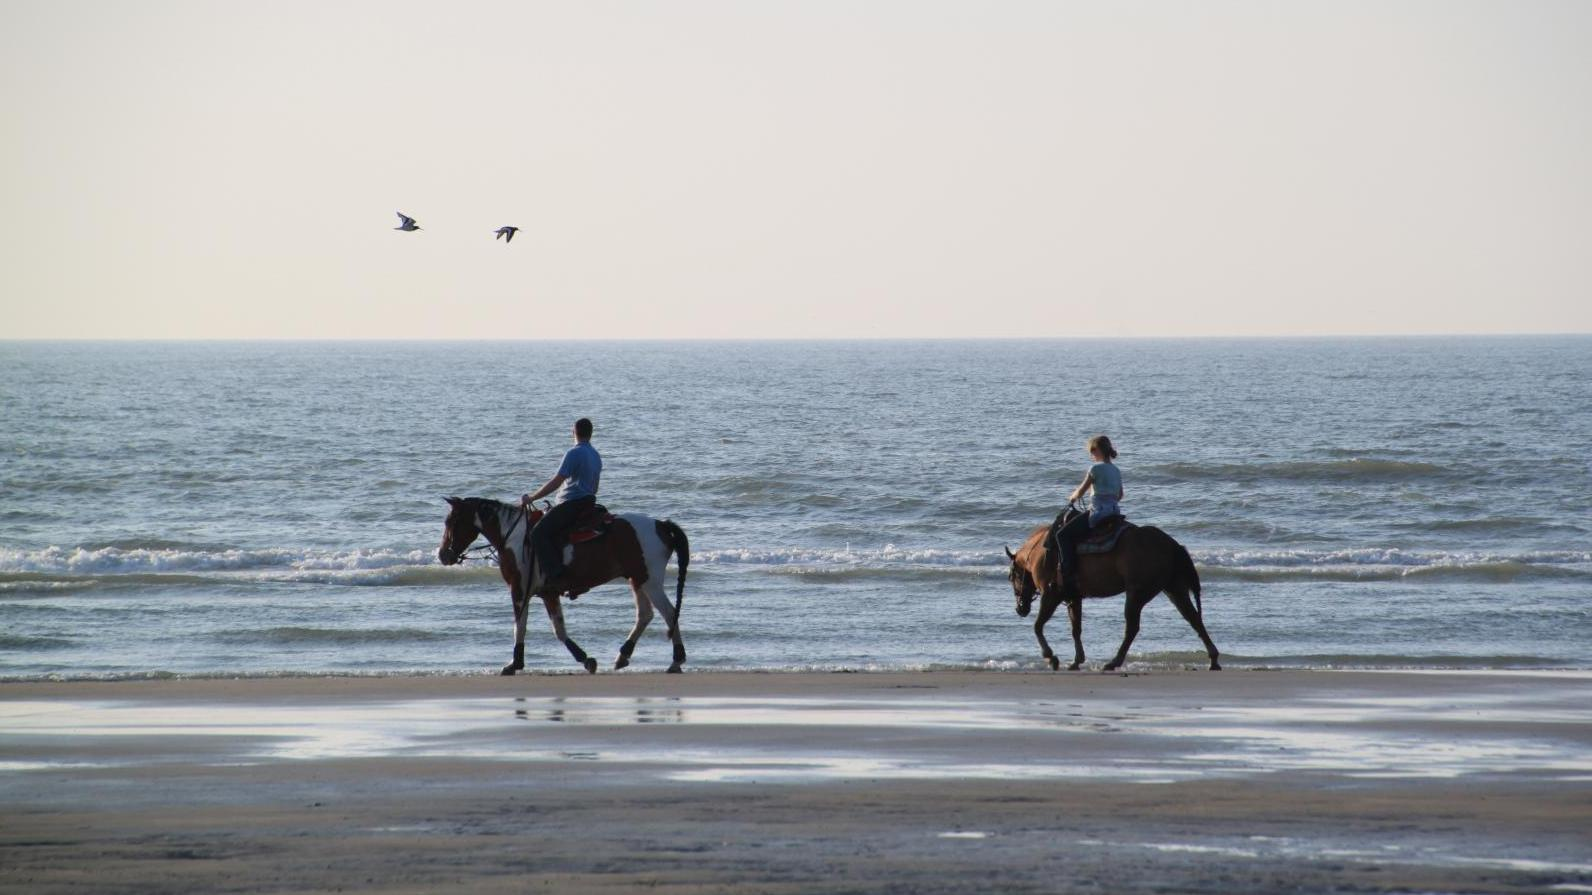 Horse riding on the beach of Egmond aan Zee